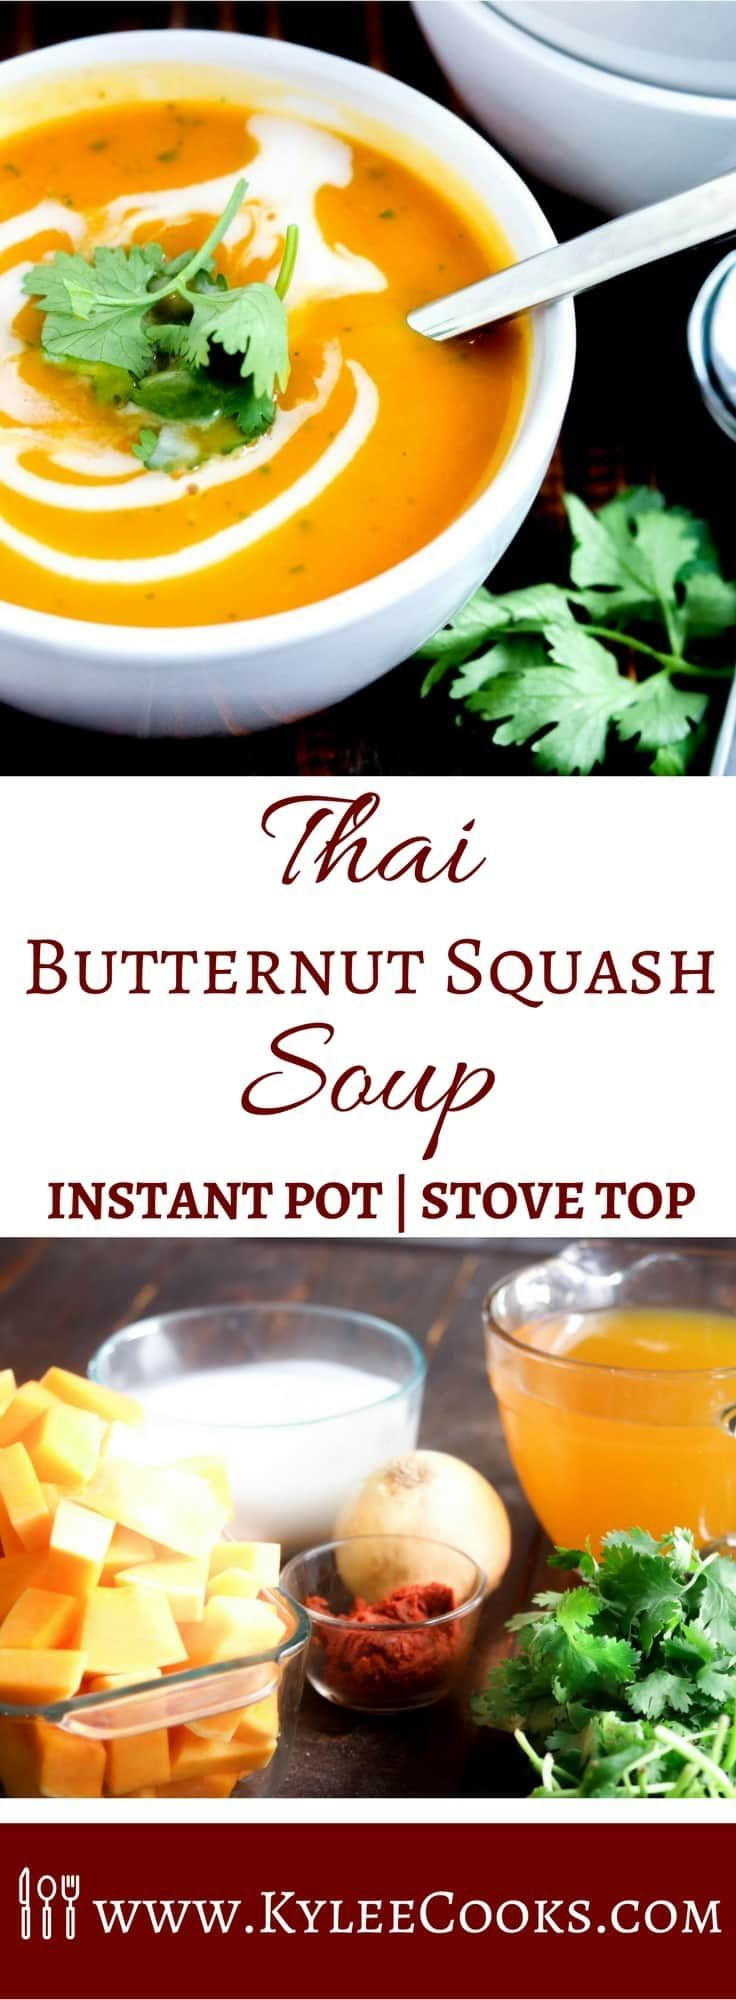 A velvety smooth and dreamy Thai Butternut Squash Soup, with a kick of Thai heat, balanced by creamy coconut cream and fragrant cilantro. Instant Pot and Stove Top instructions included!